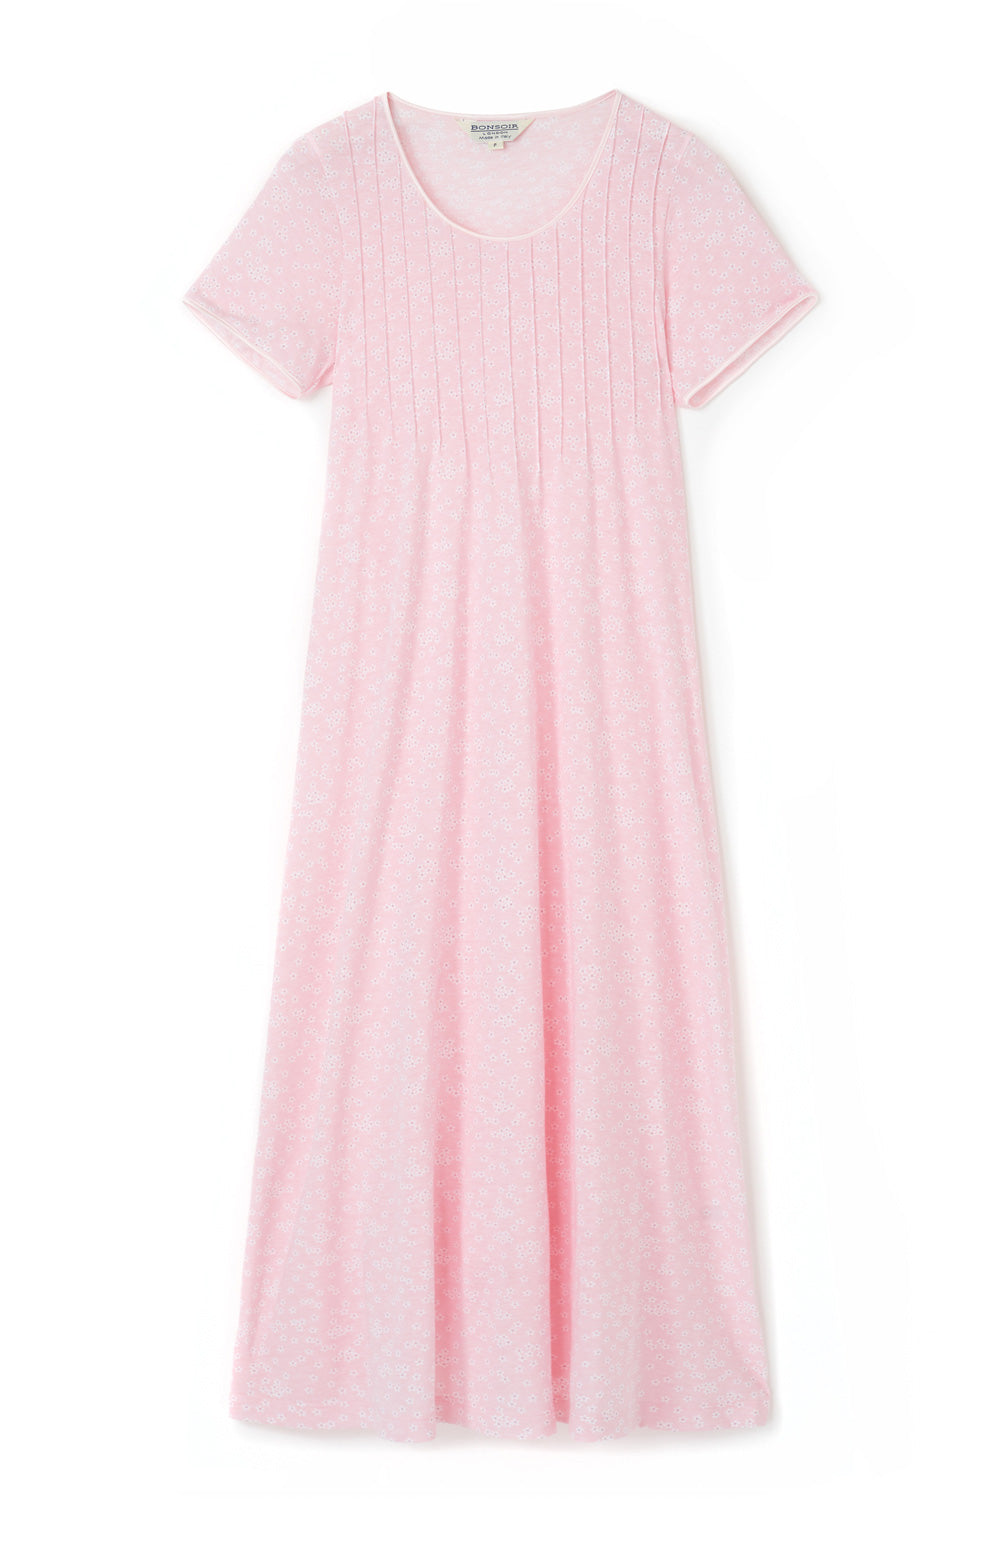 French Pleat Pink Daisy Short Sleeve Nightdress | Bonsoir of London